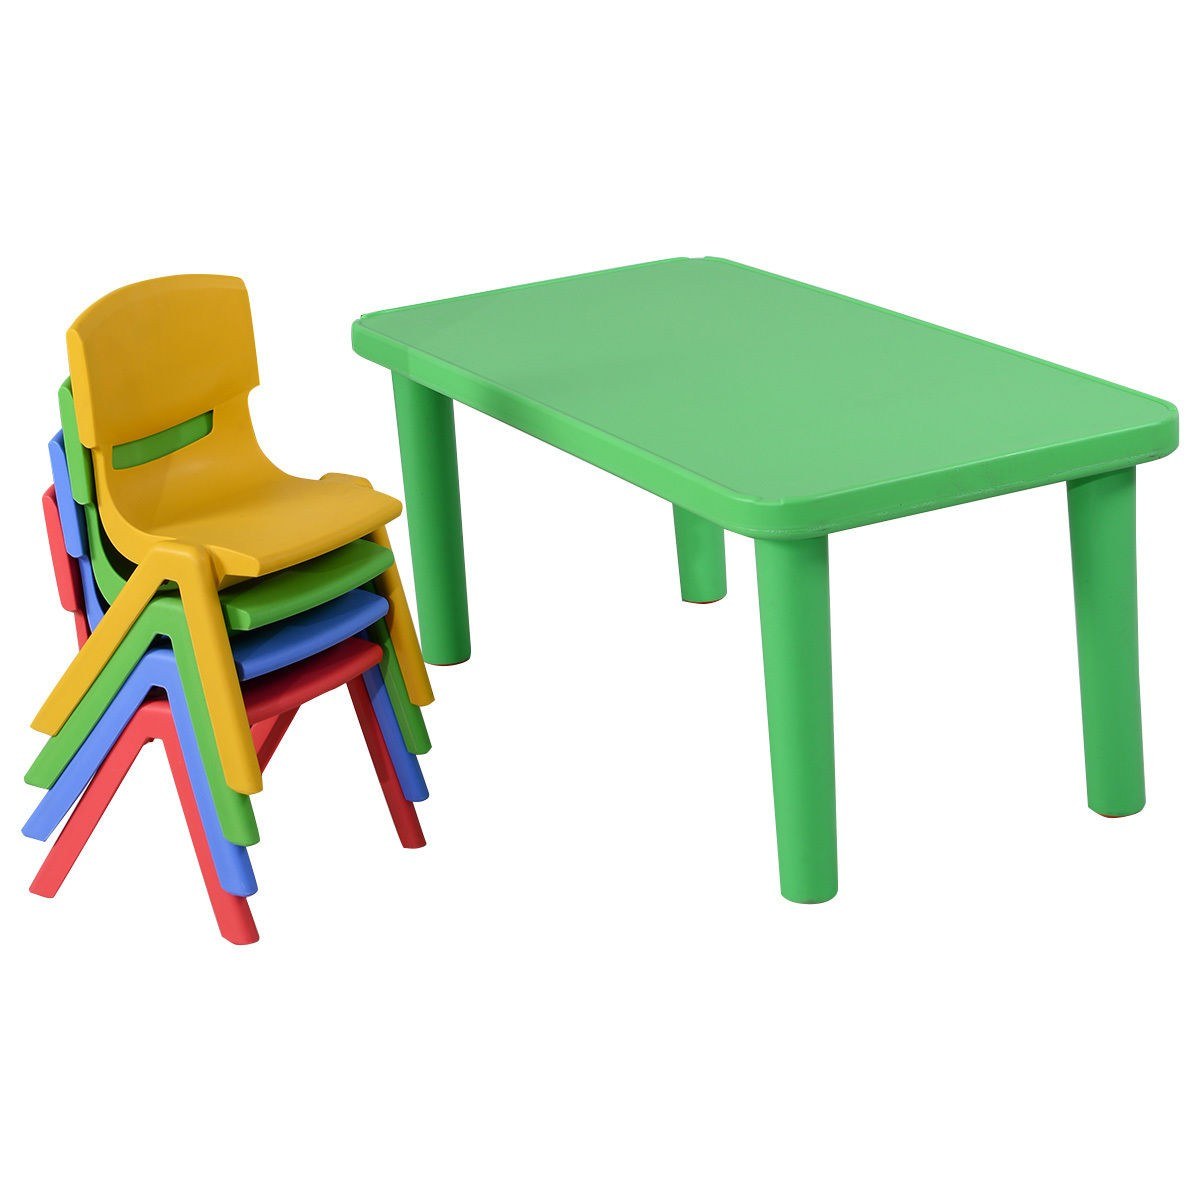 Fun Kids Plastic Table And 4 Chairs Set Colorful Play School Home Furniture Ebay